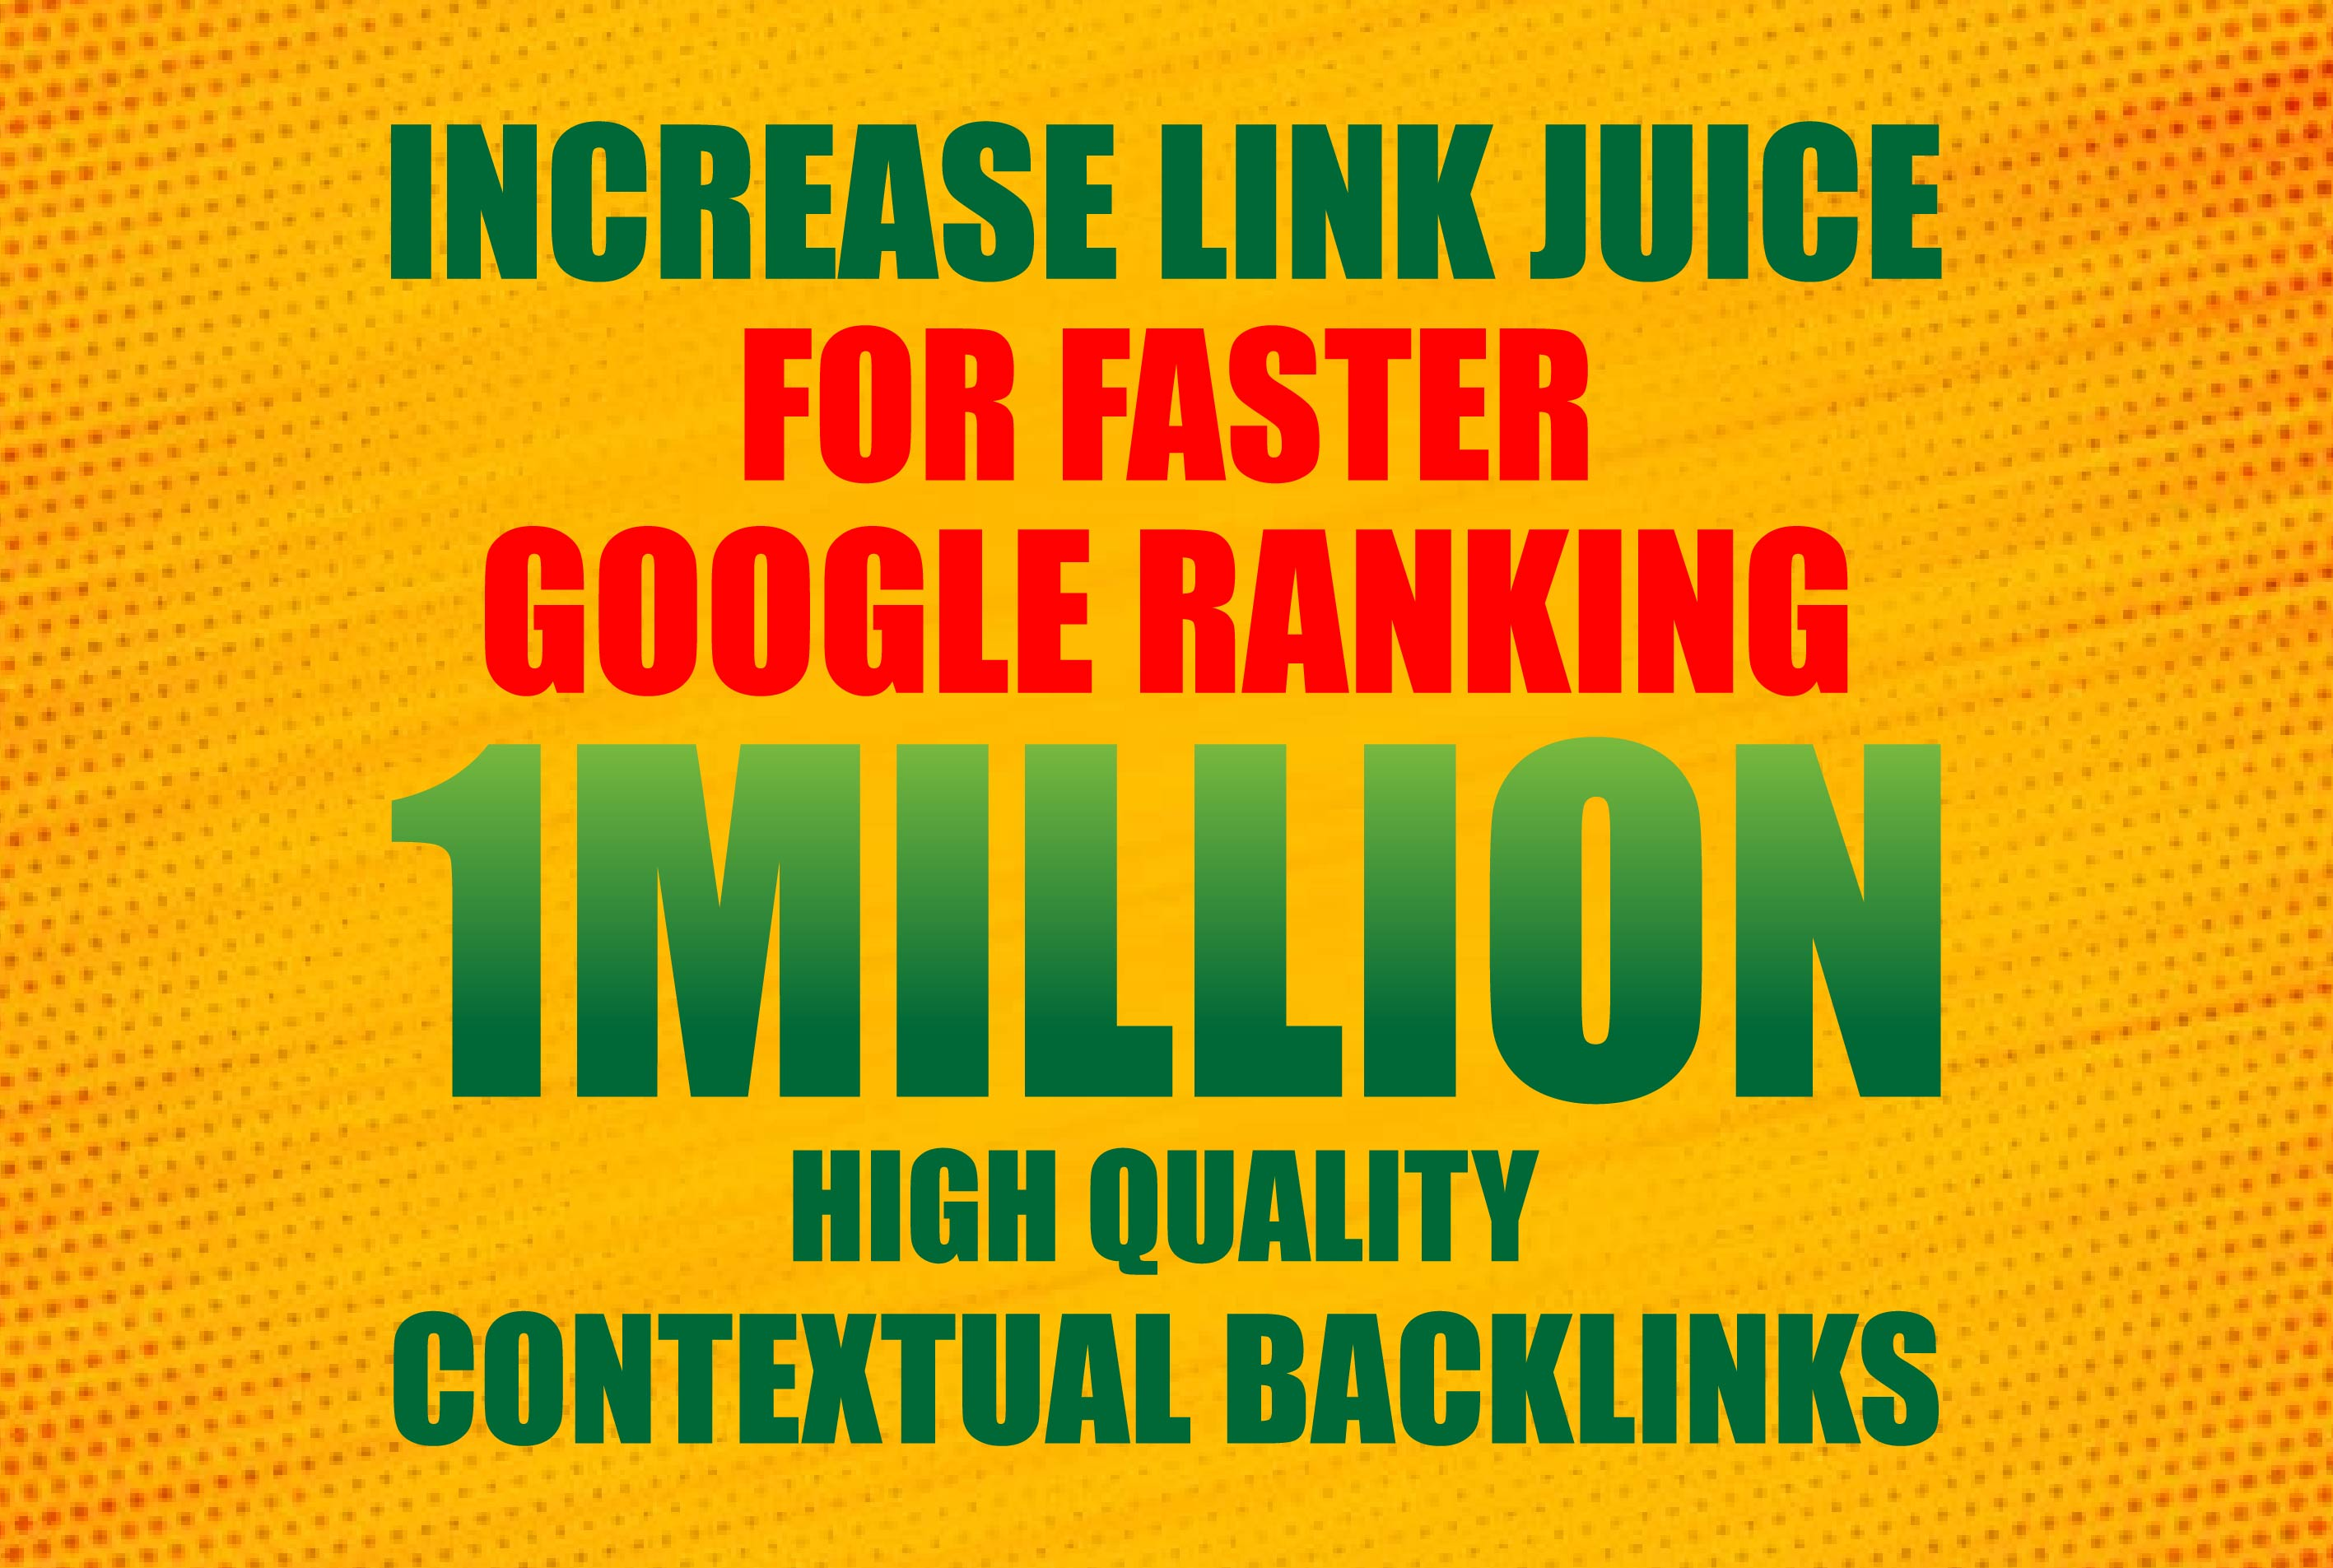 Do 1Million HQ Contextual Backlinks